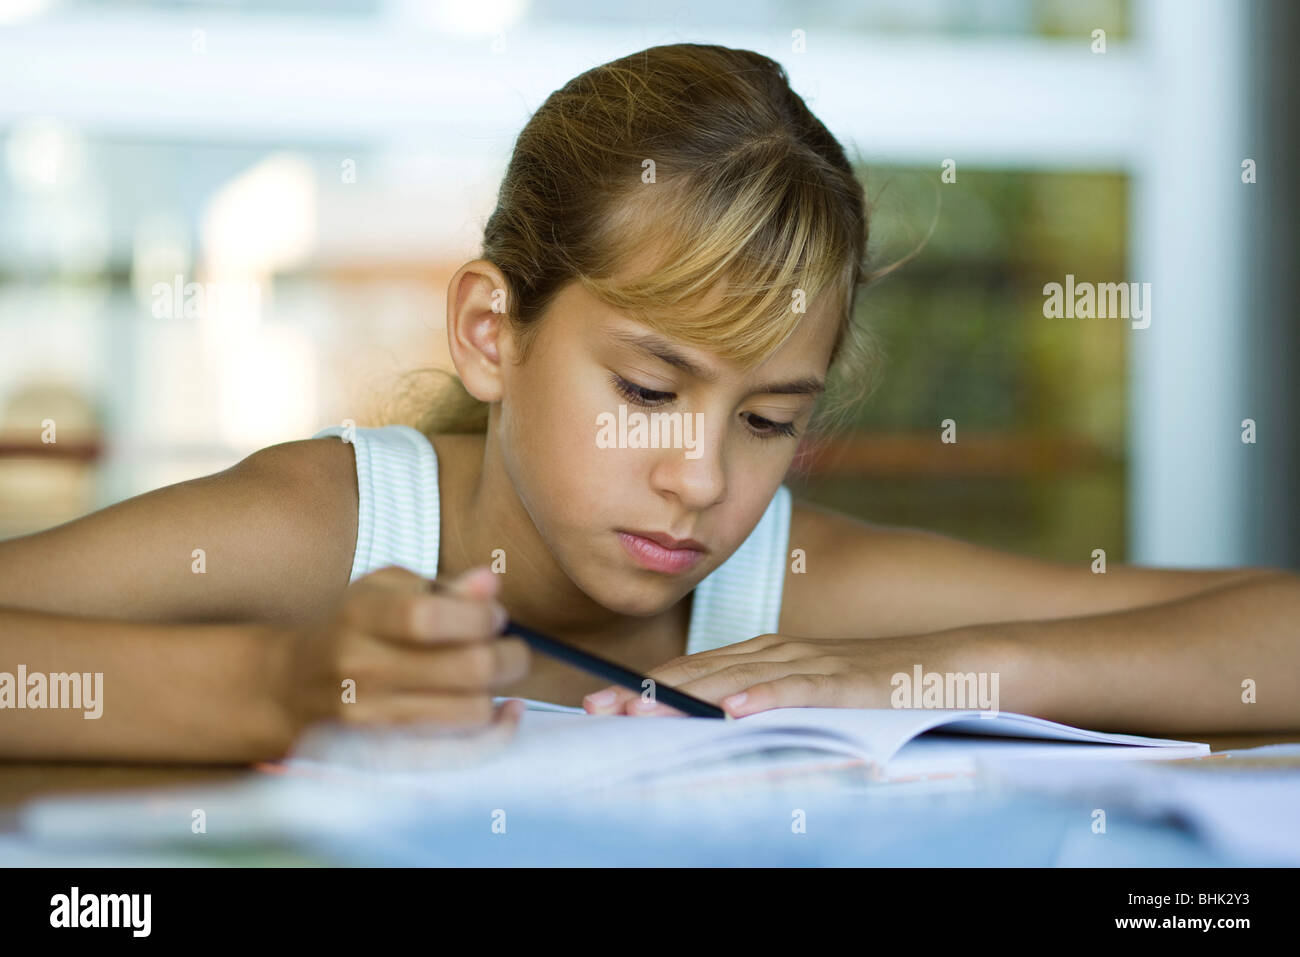 Female junior high student studying - Stock Image